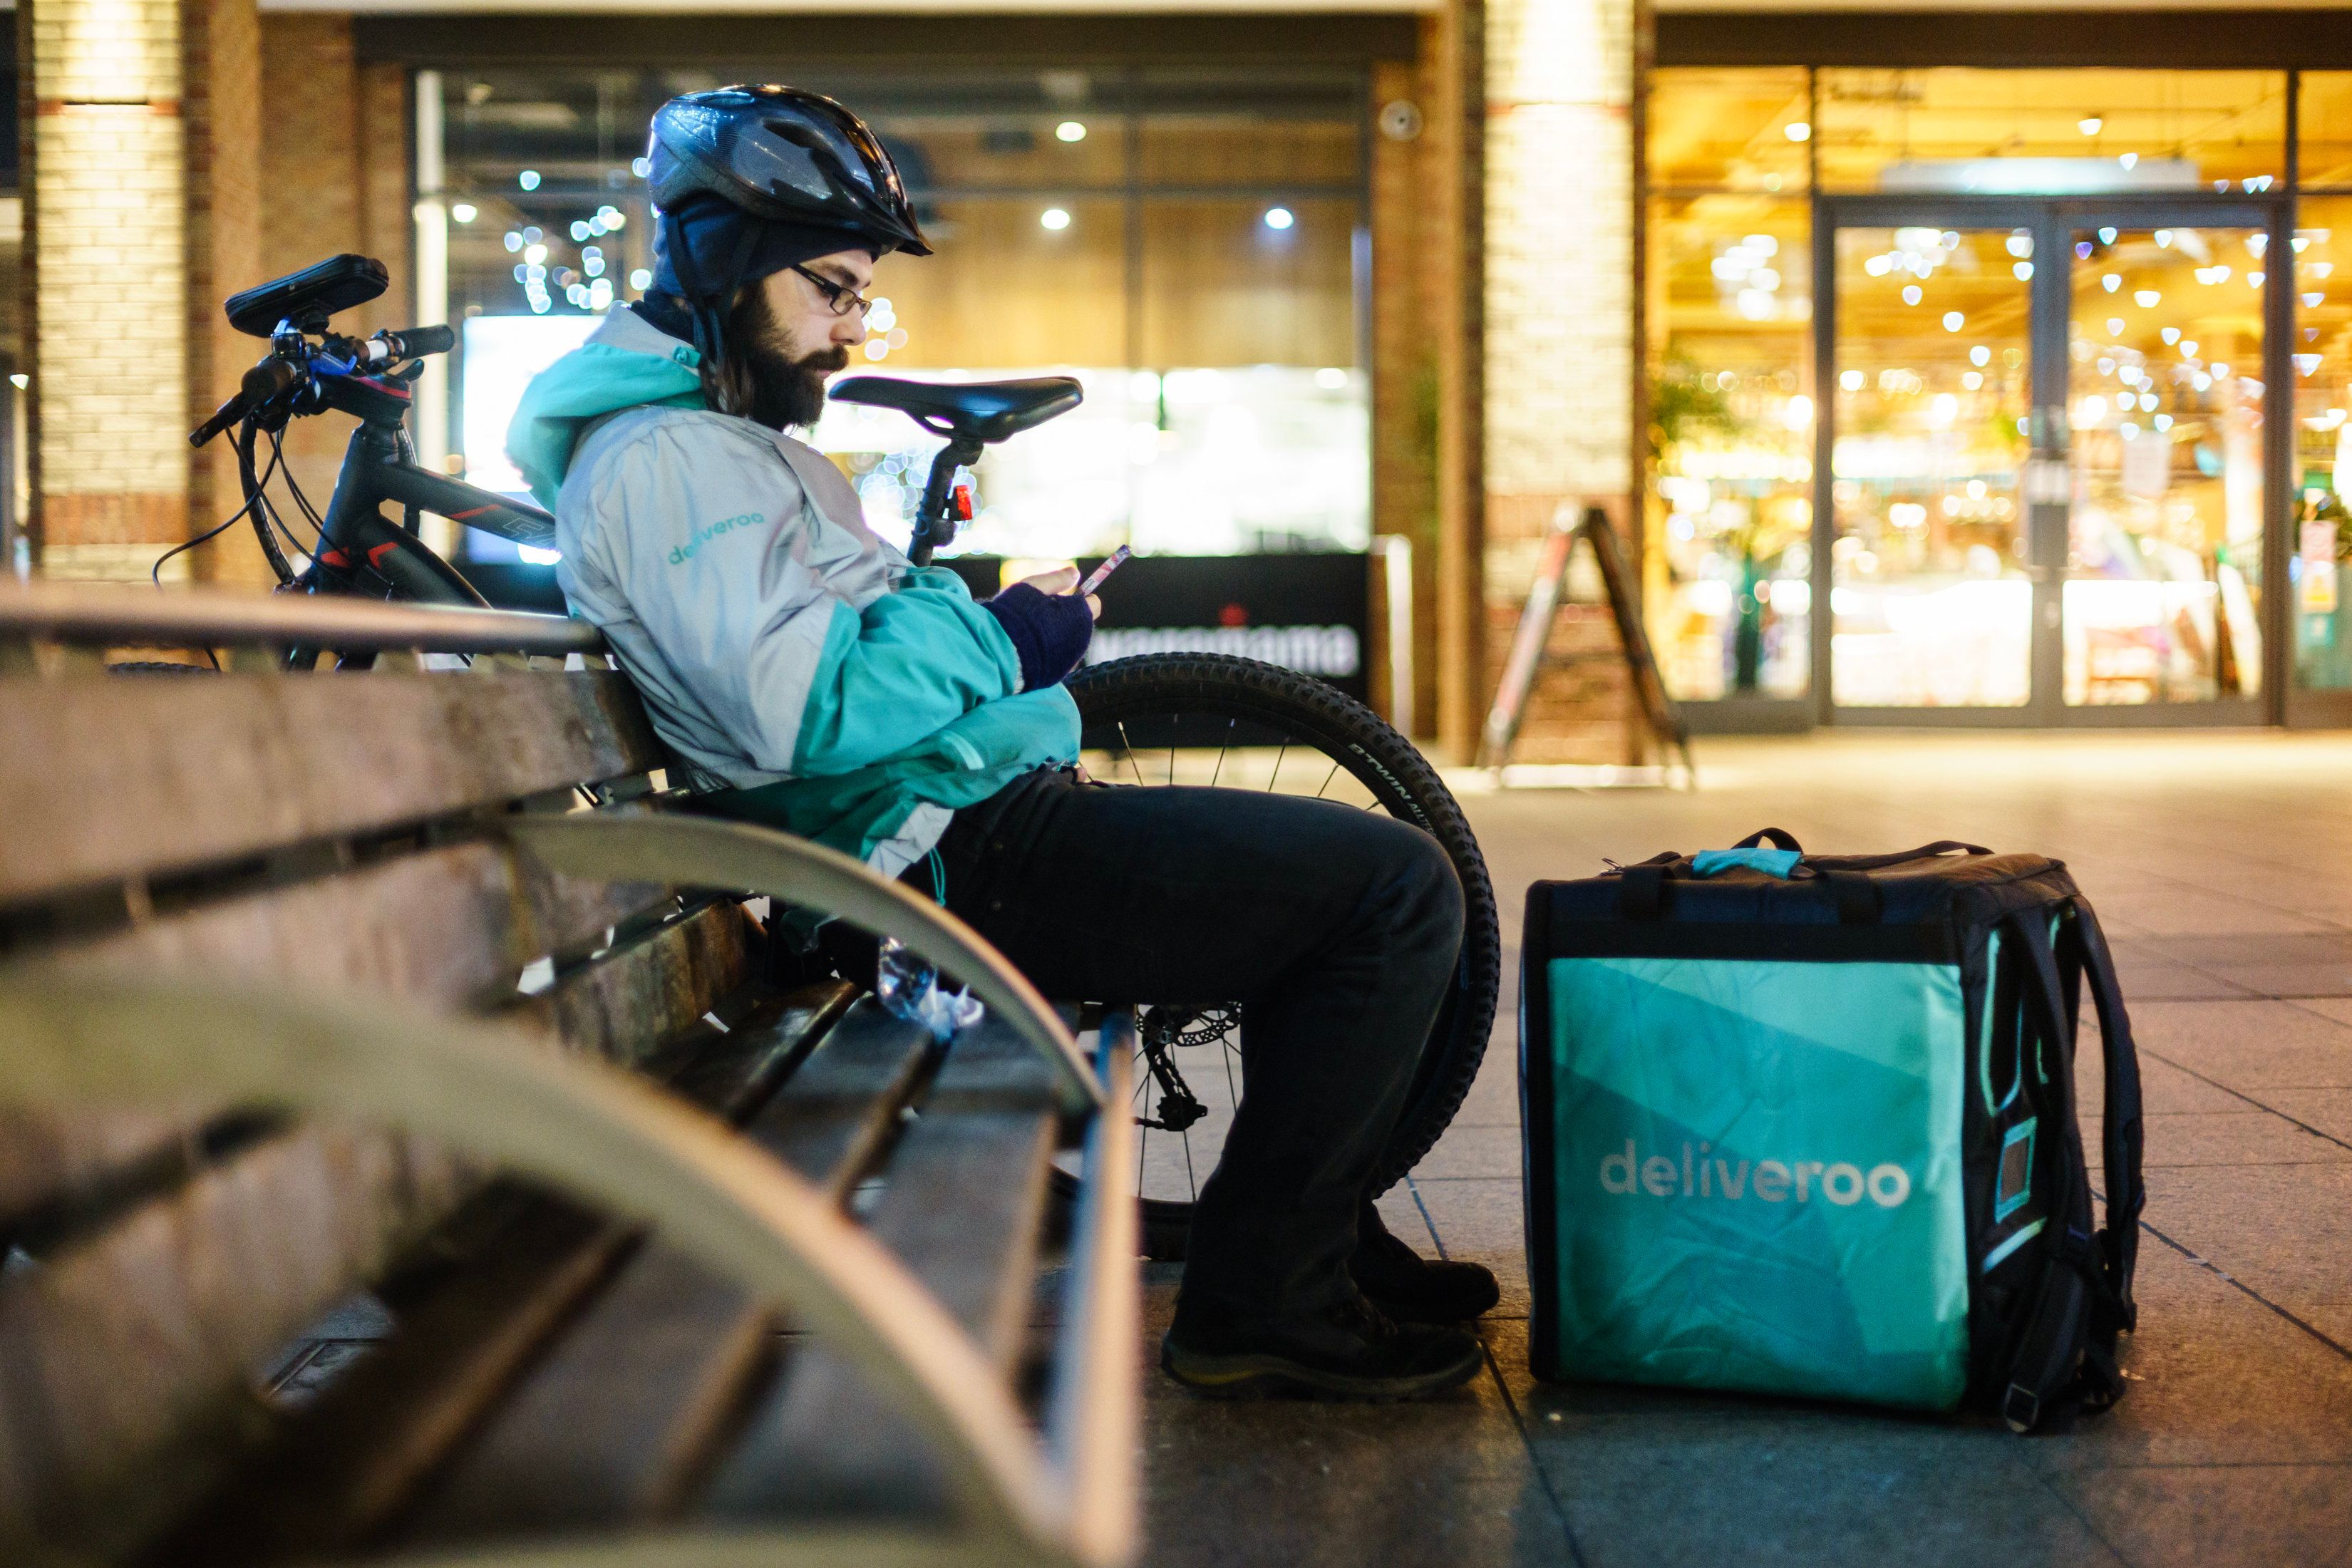 XMAS HOPE: How Deliveroo Riders Will Help Reunite Missing People With Loved Ones This